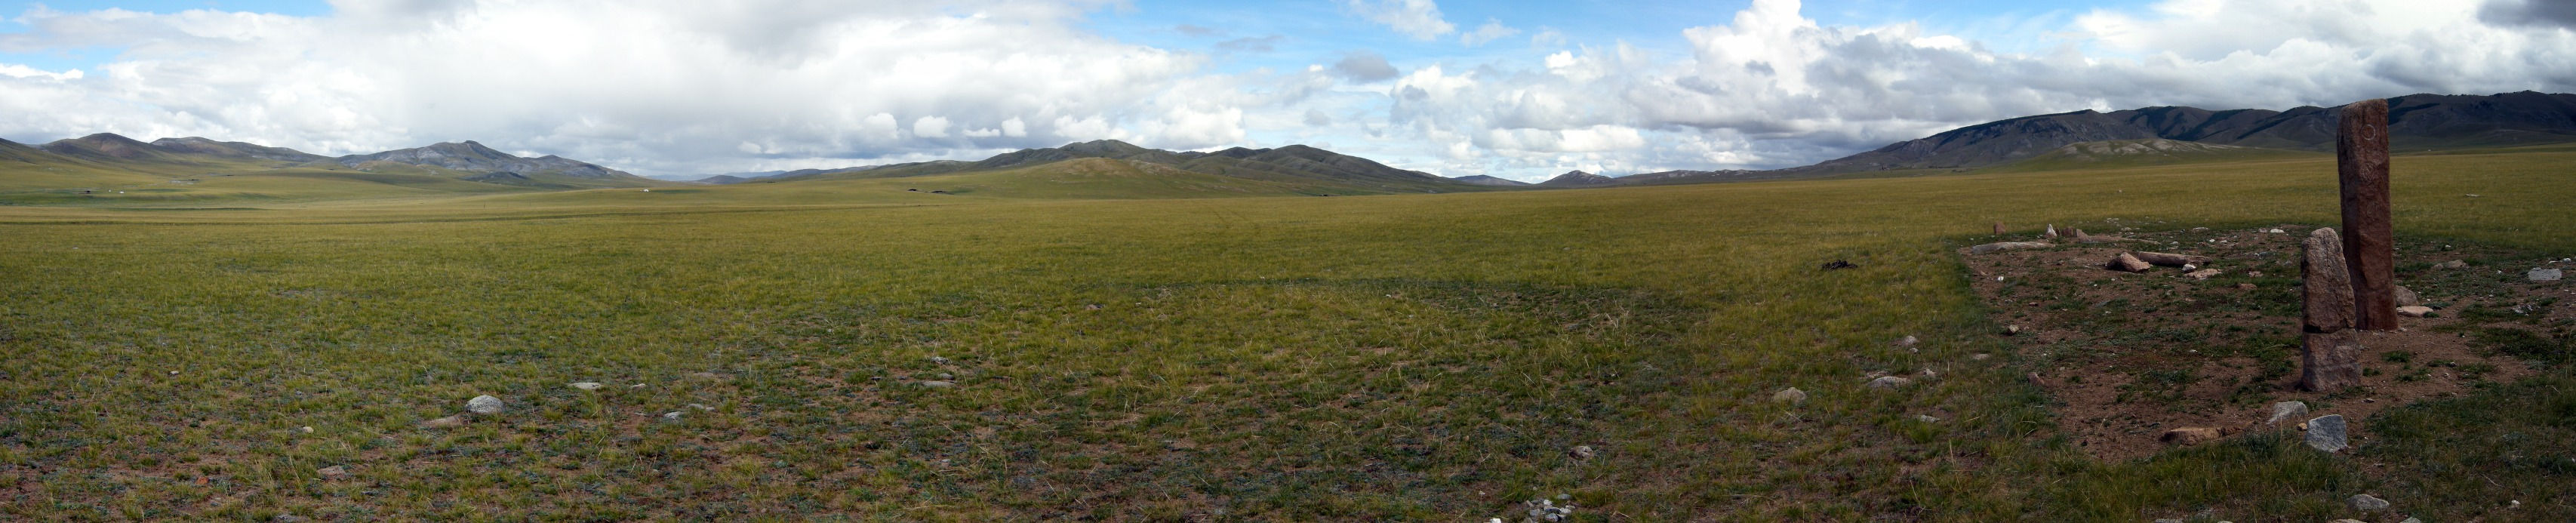 Deer stone and the steppe